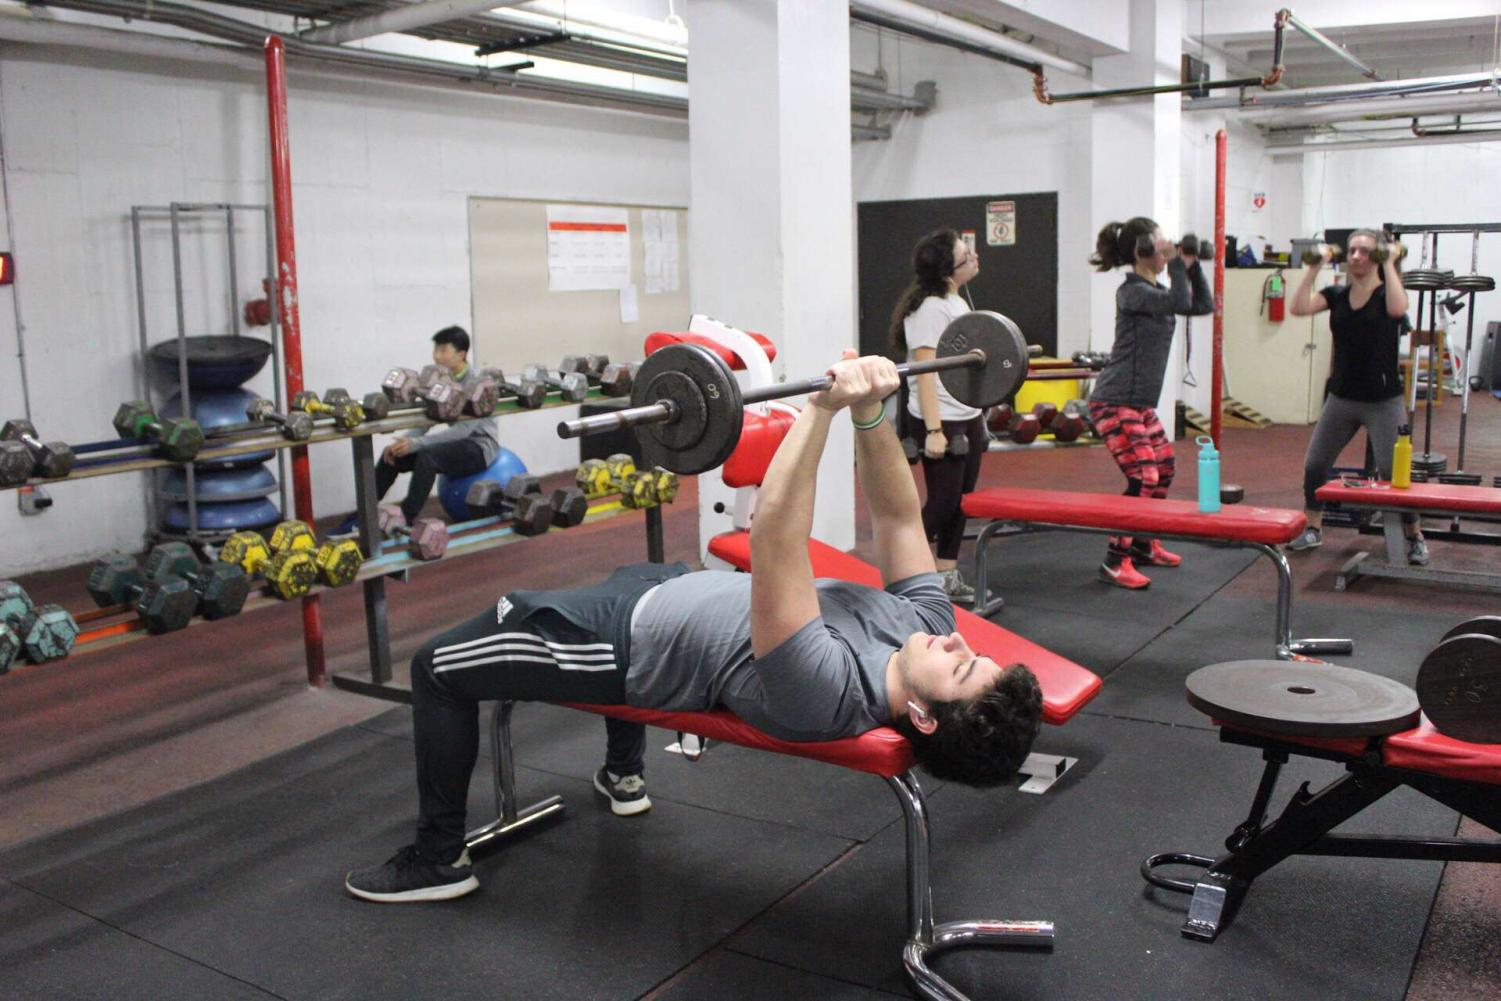 A common New Year's resolution for students is to improve their health and workout more.